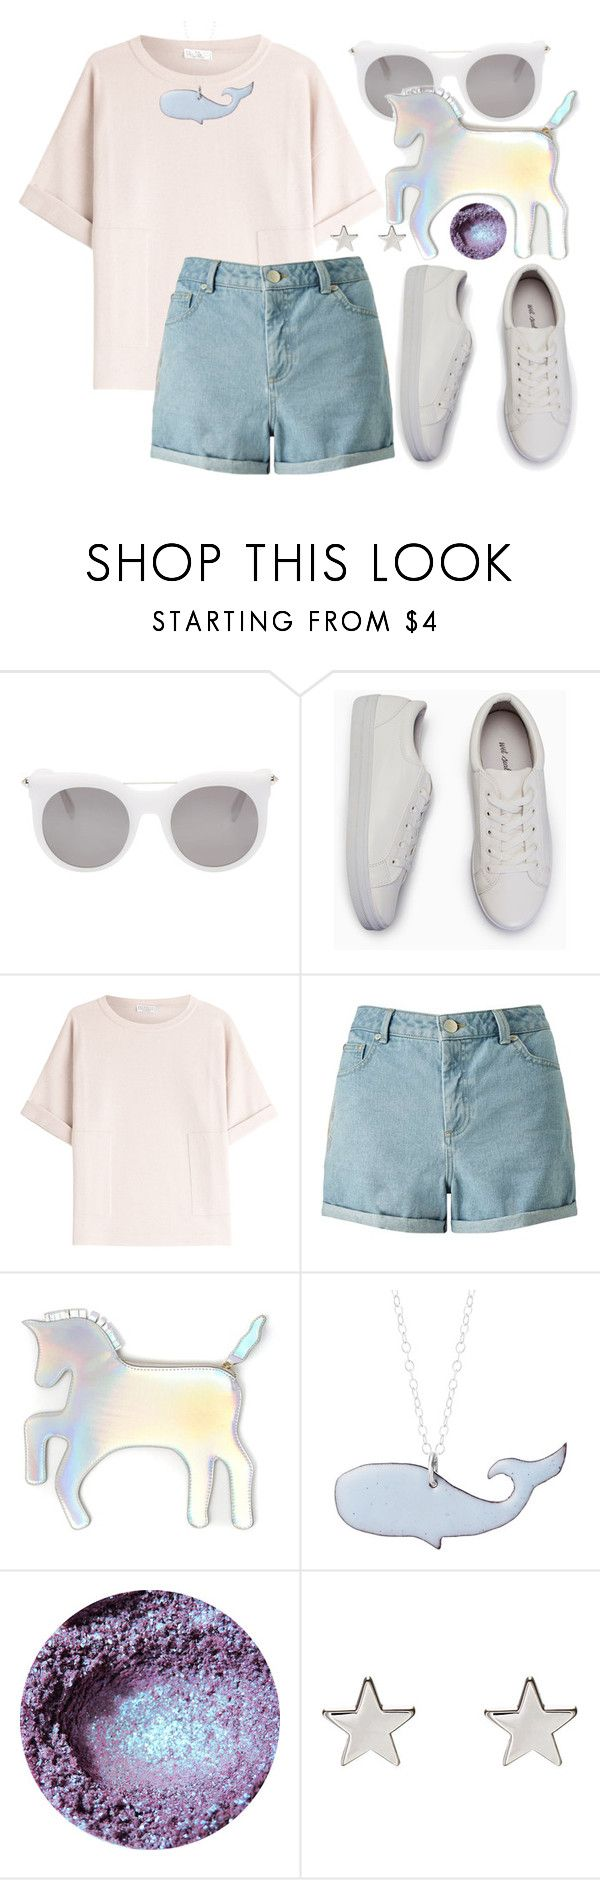 """""""Untitled #700"""" by atarituesday ❤ liked on Polyvore featuring Alexander McQueen, Brunello Cucinelli, Miss Selfridge, WithChic and Jennifer Meyer Jewelry"""